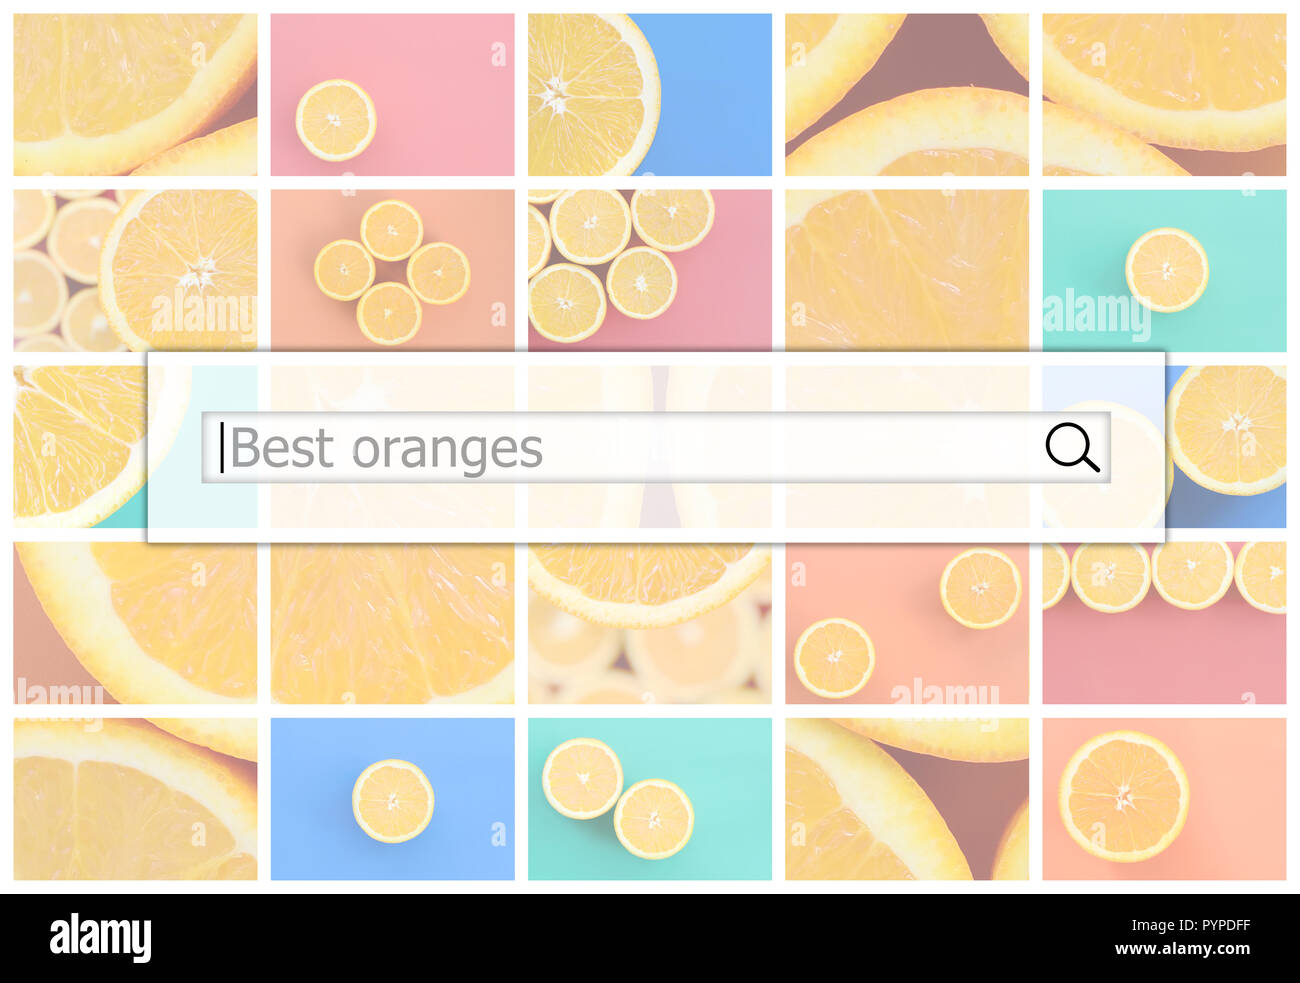 Visualization of the search bar on the background of a collage of many pictures with juicy best oranges. - Stock Image